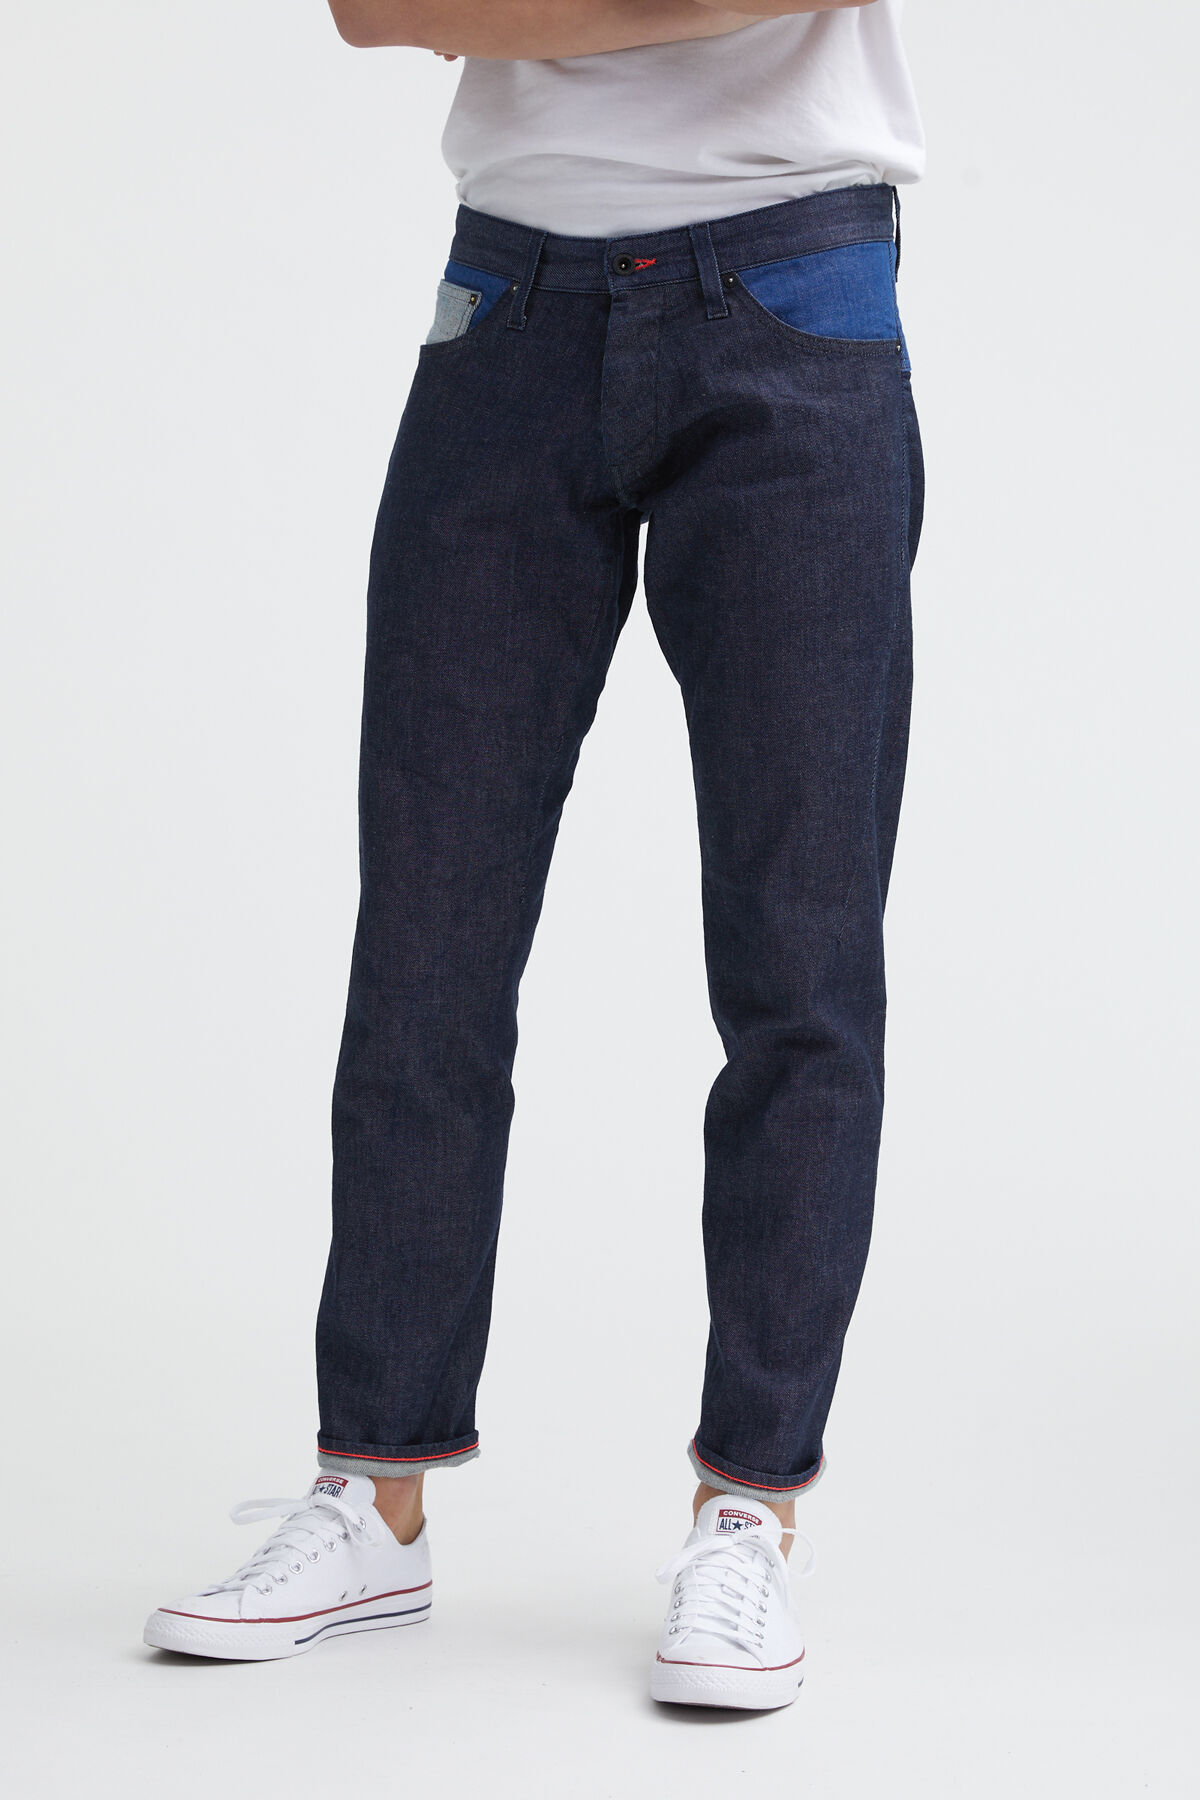 KINETIC 90MIX Sustainable deinim - Wide, Tapered Fit